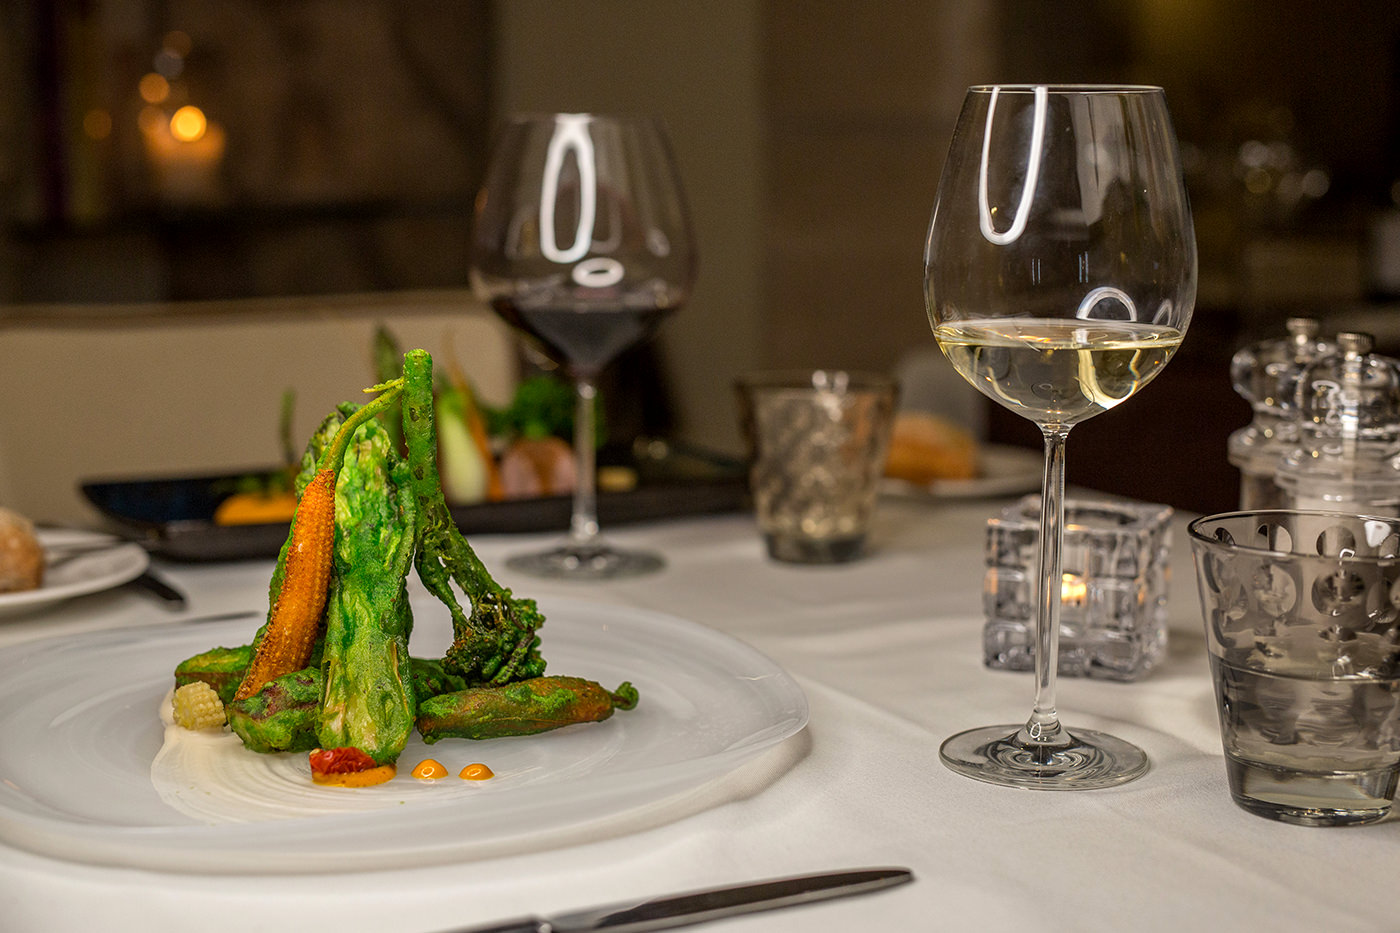 Delicious vegetarian dishes - Verico Port Andratx, Mallorca